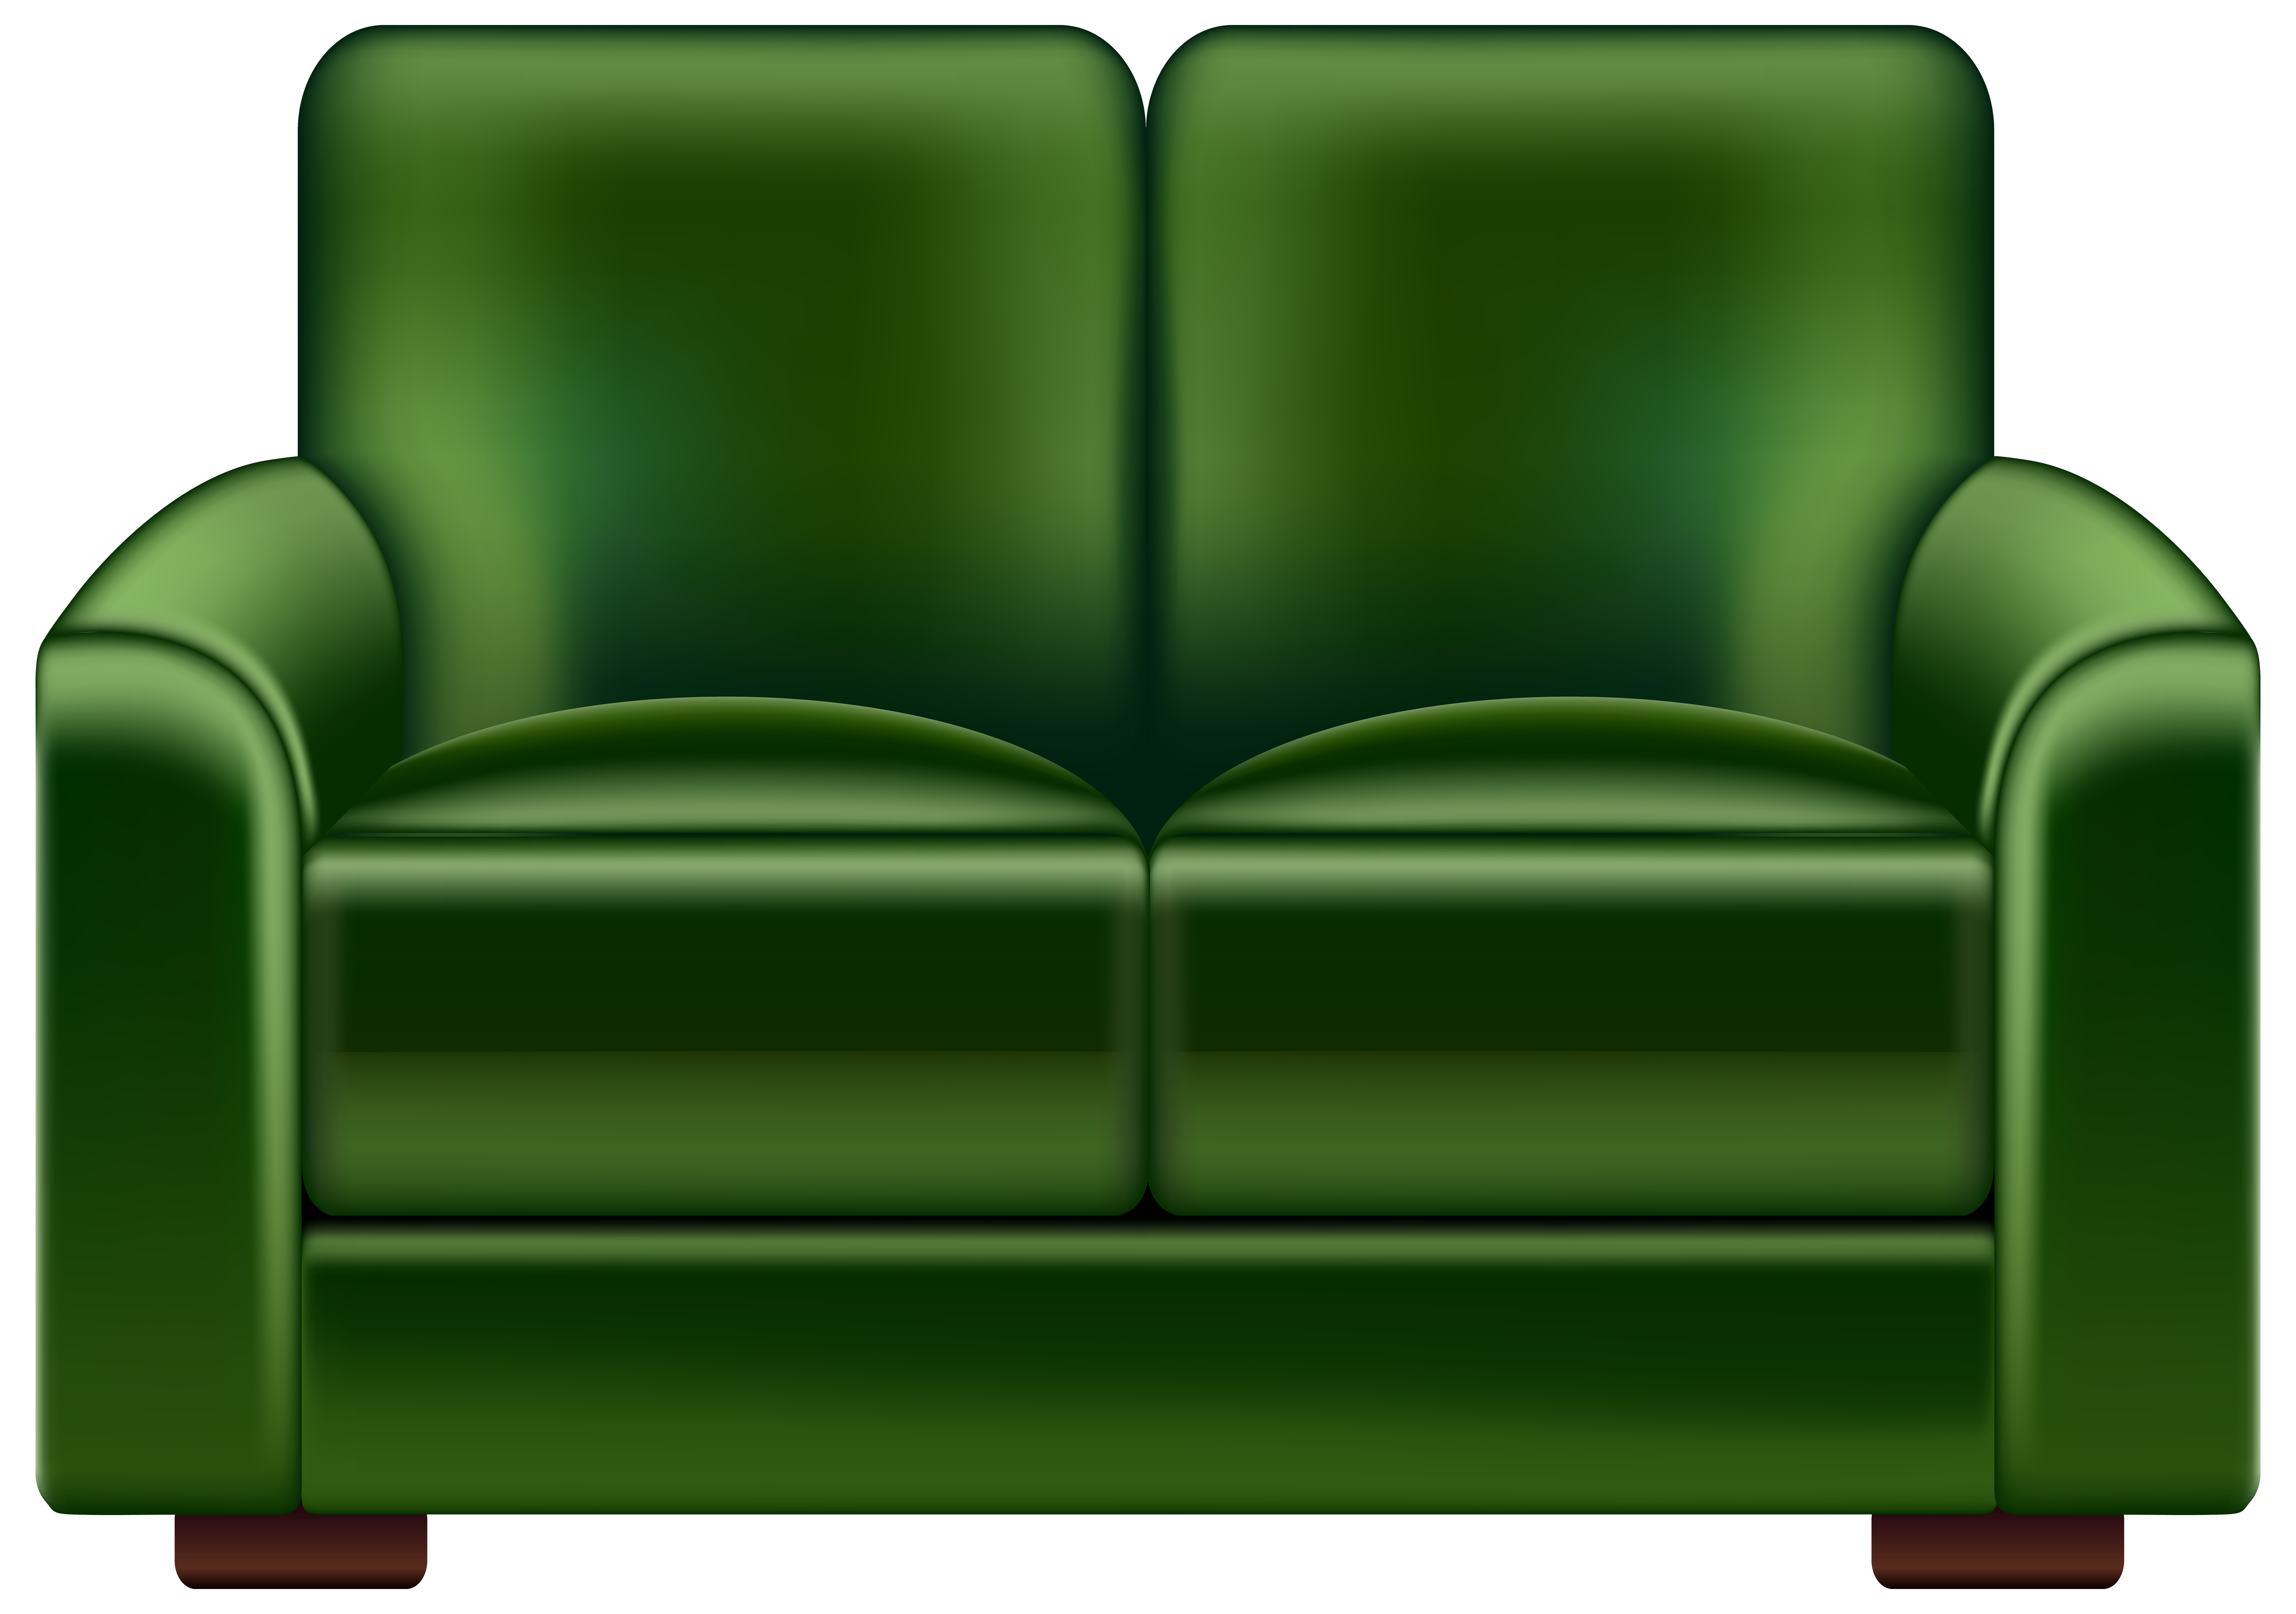 Loveseat transparent png clip. Couch clipart green couch